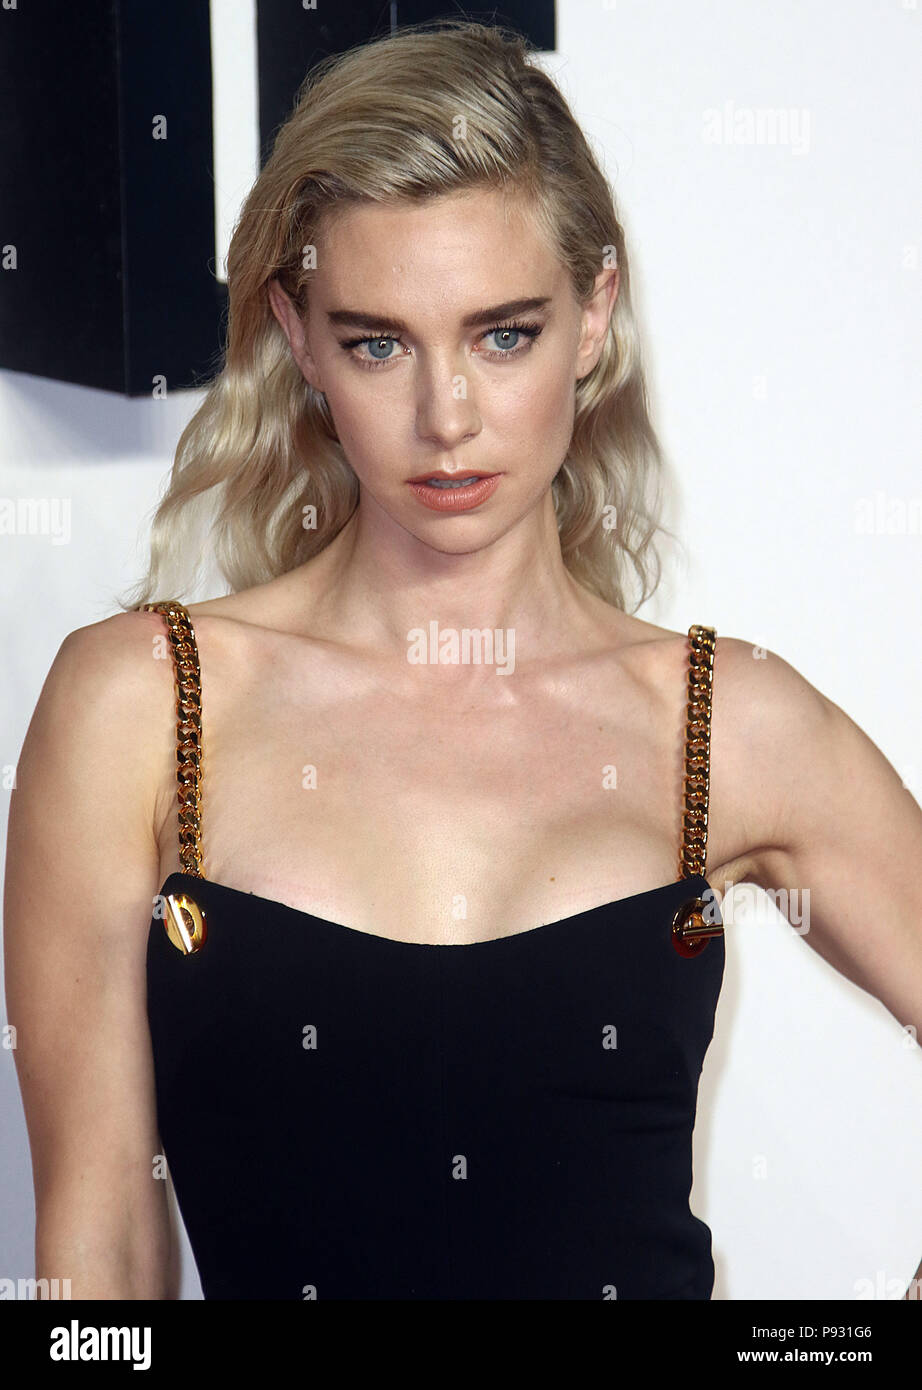 Foto Vanessa Kirby nude (55 foto and video), Topless, Sideboobs, Twitter, braless 2018